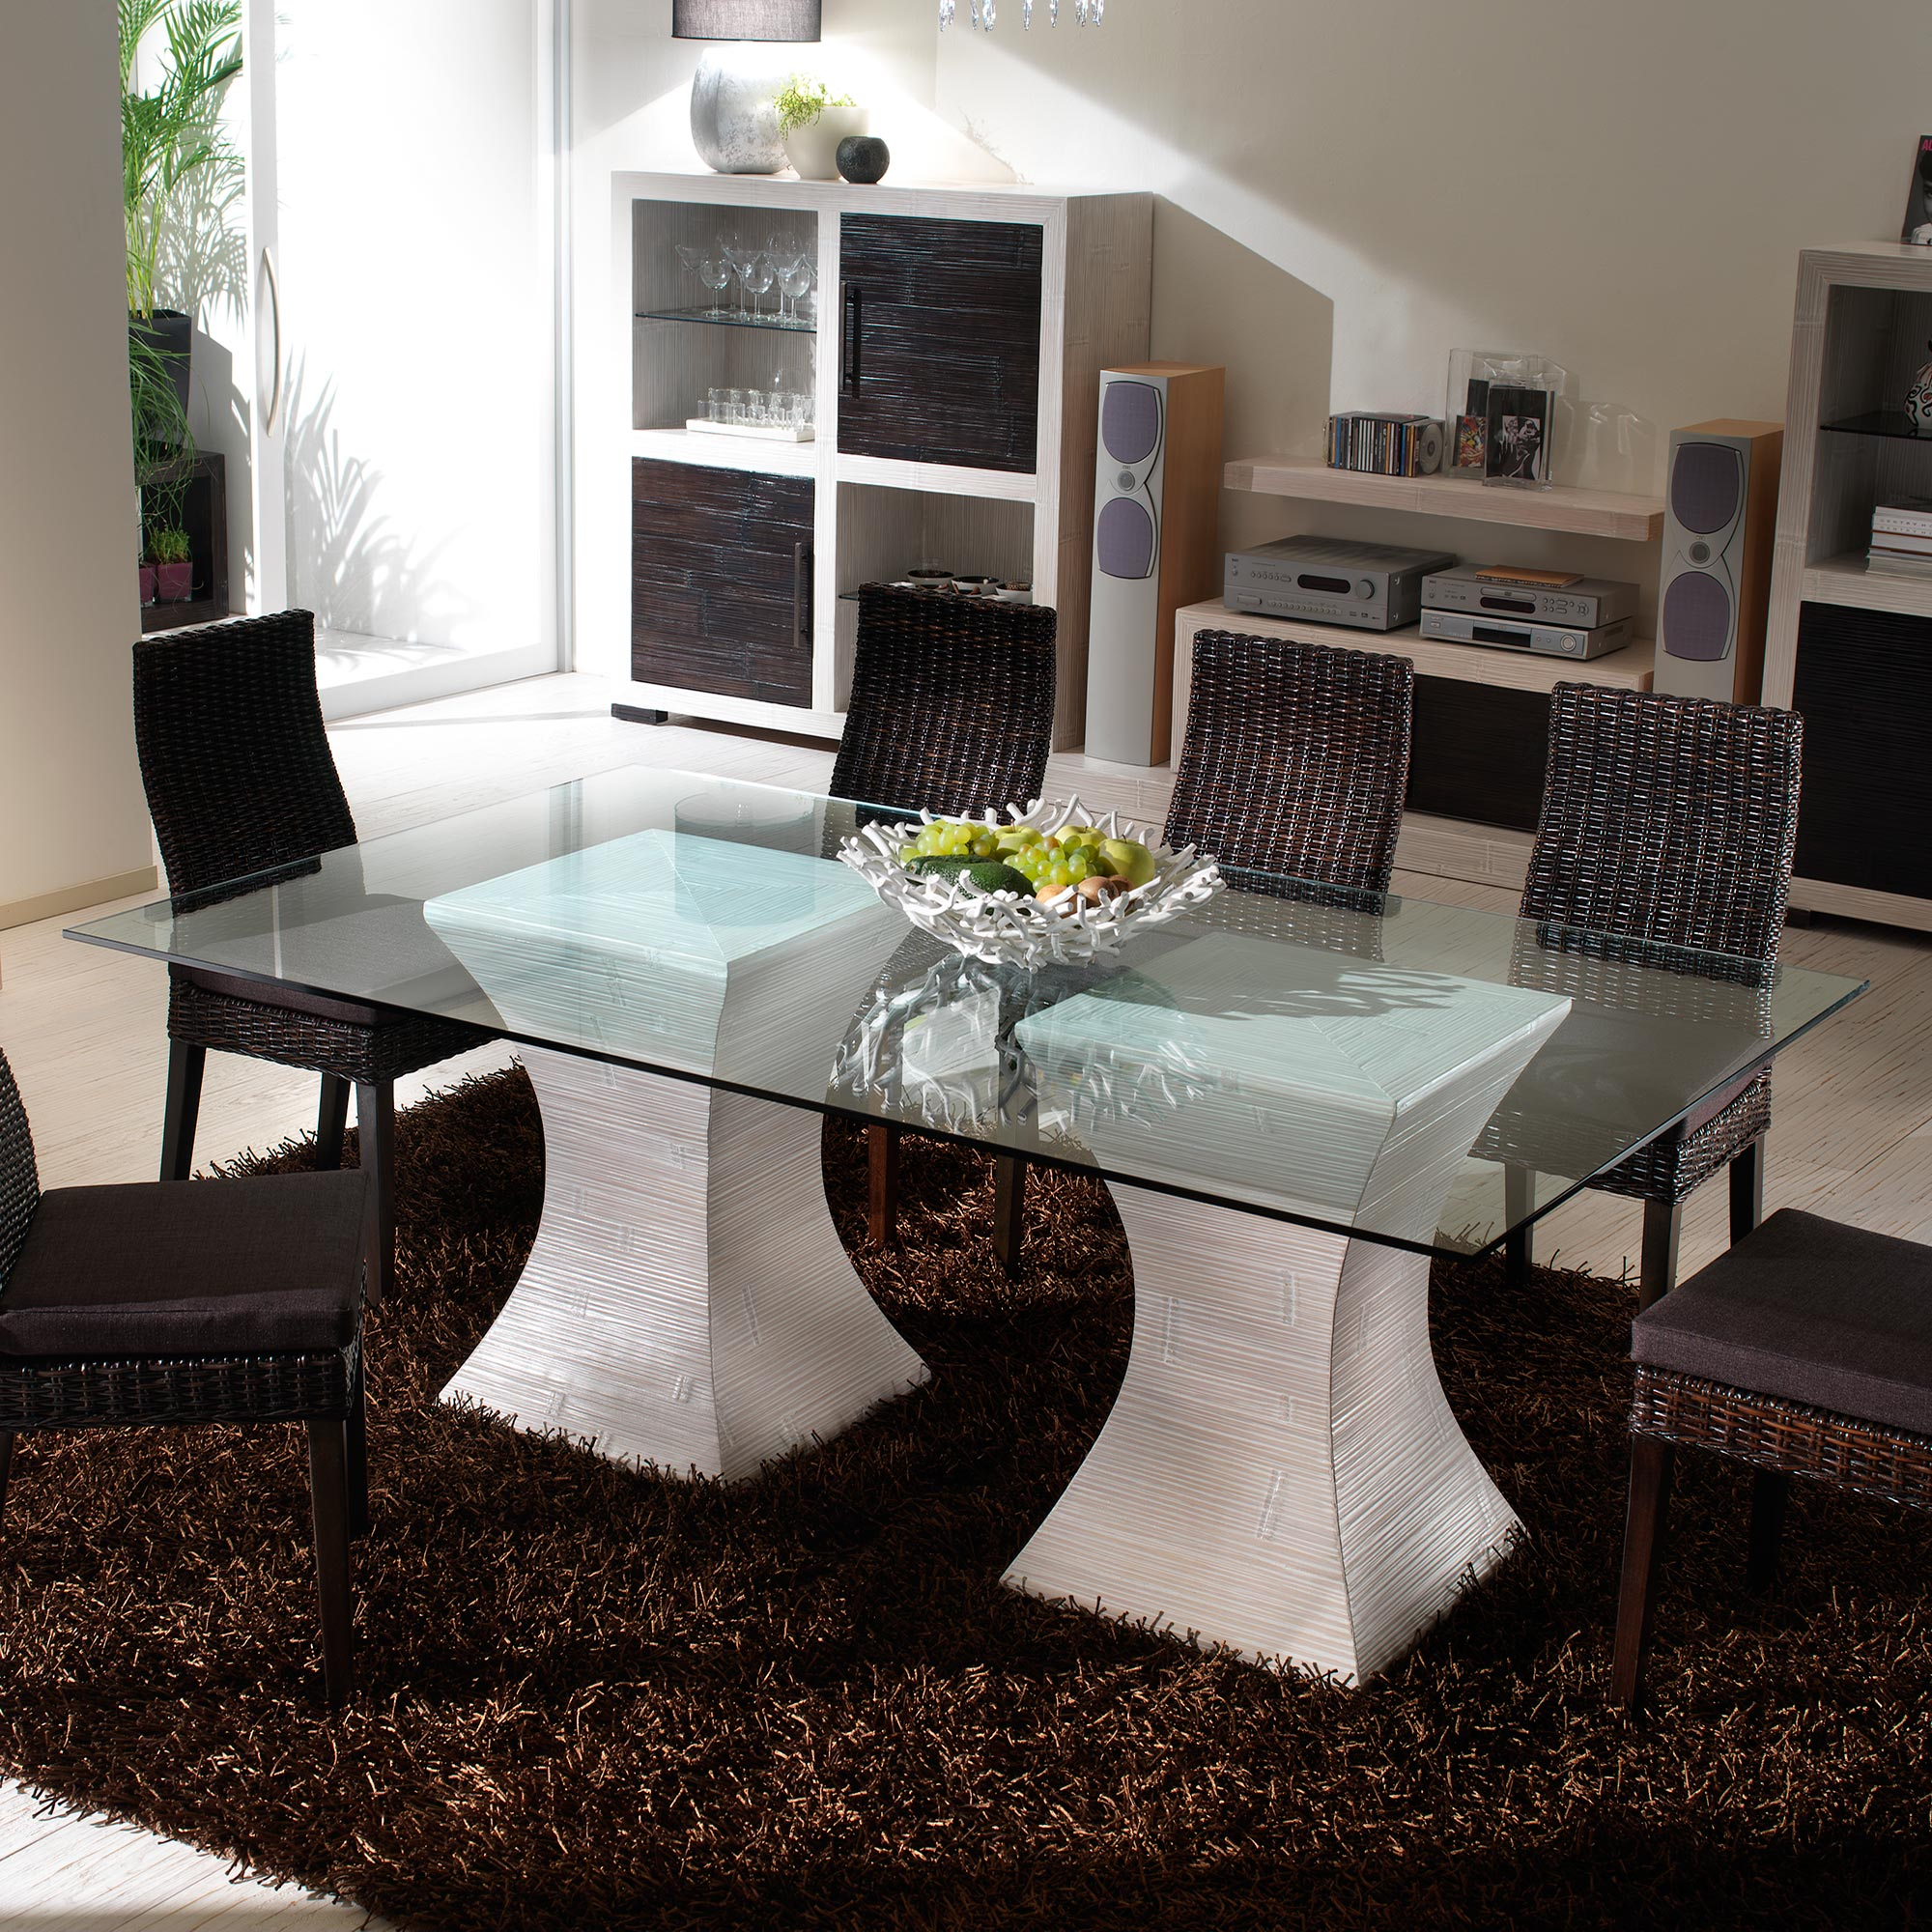 table salle manger moderne blanc c rus dimension 200 100 mod le pacamara. Black Bedroom Furniture Sets. Home Design Ideas